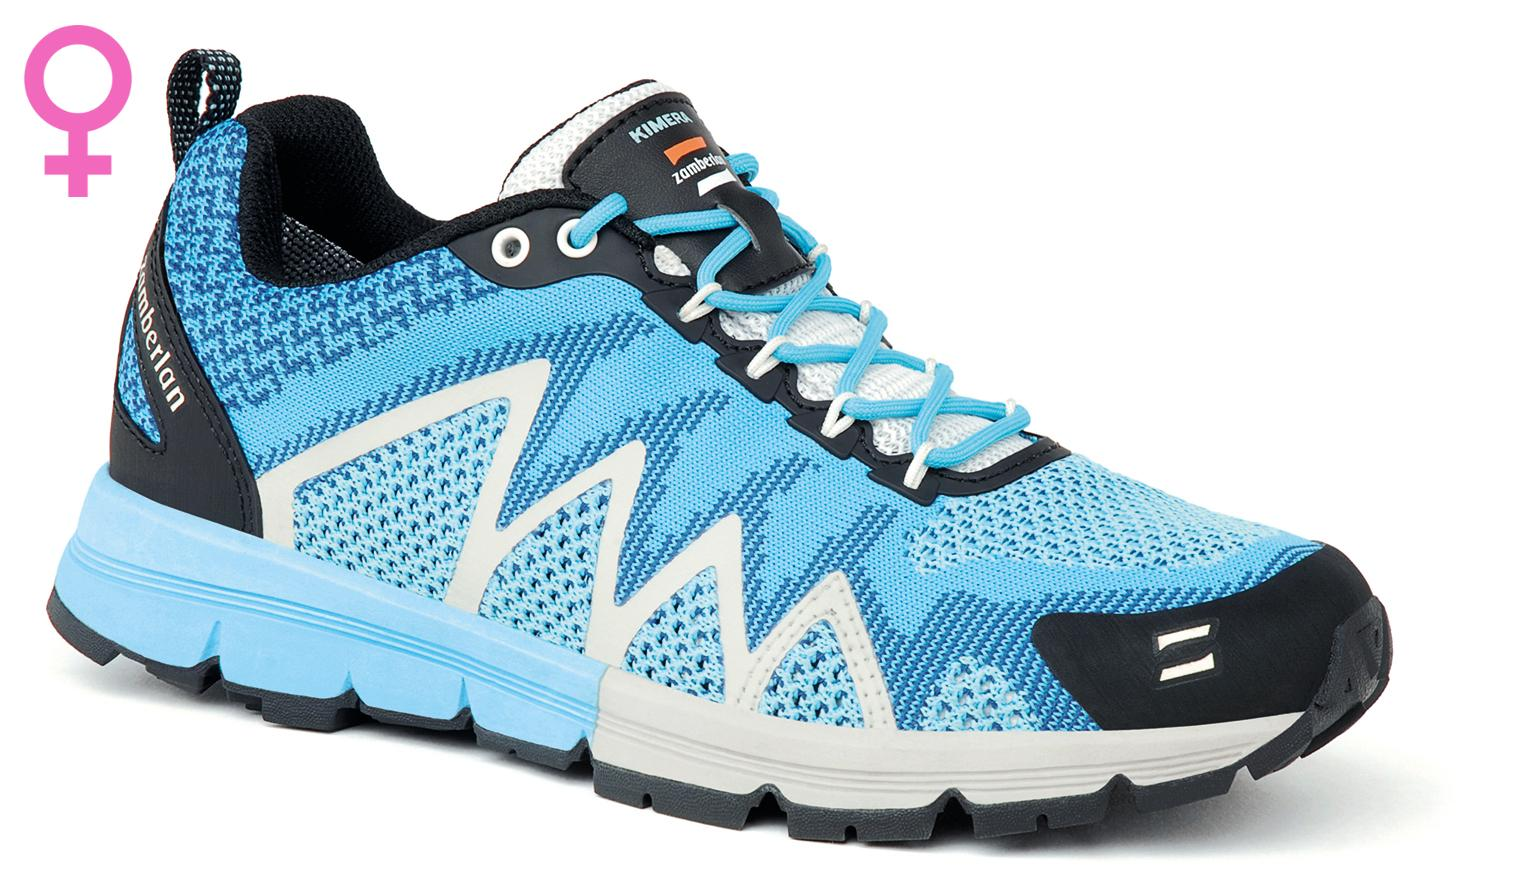 123 KIMERA RR WNS   -   Hiking  Shoes   -   Light Blue